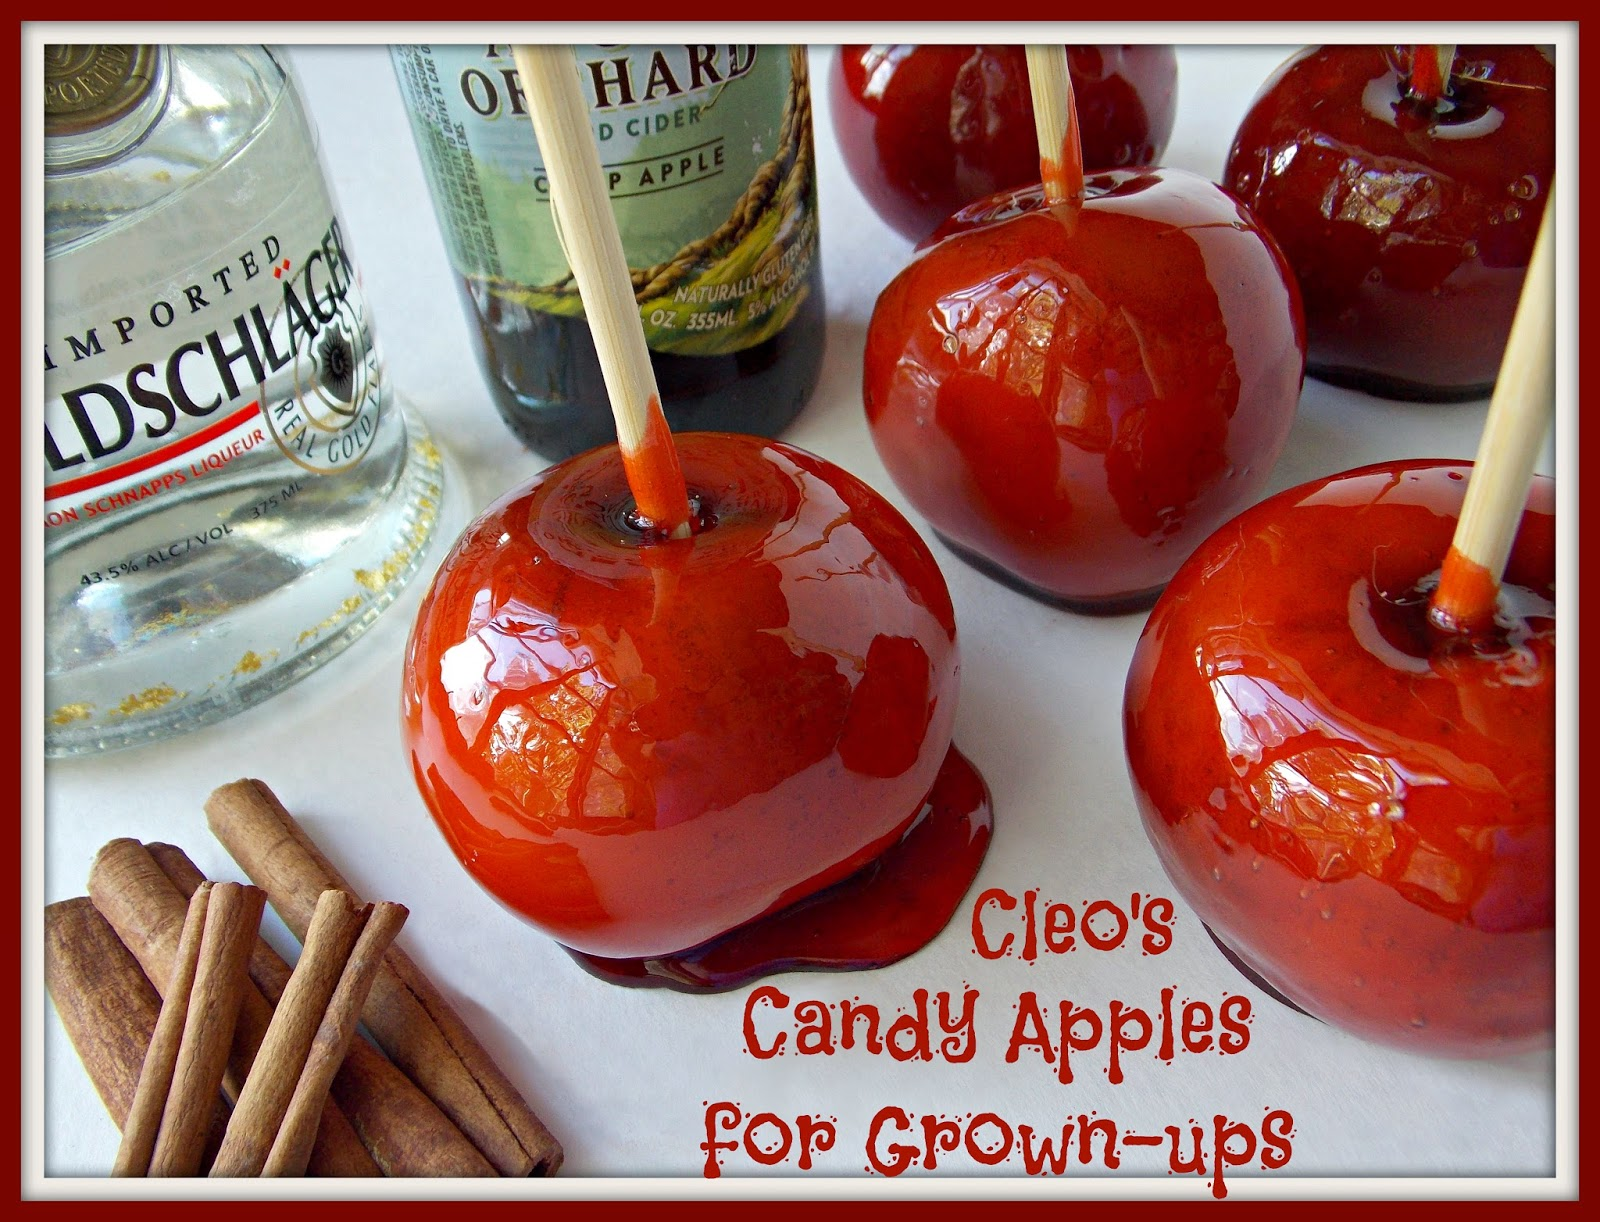 cinnamon schnapps spiked candy apples - Periodic Table Tin Apple